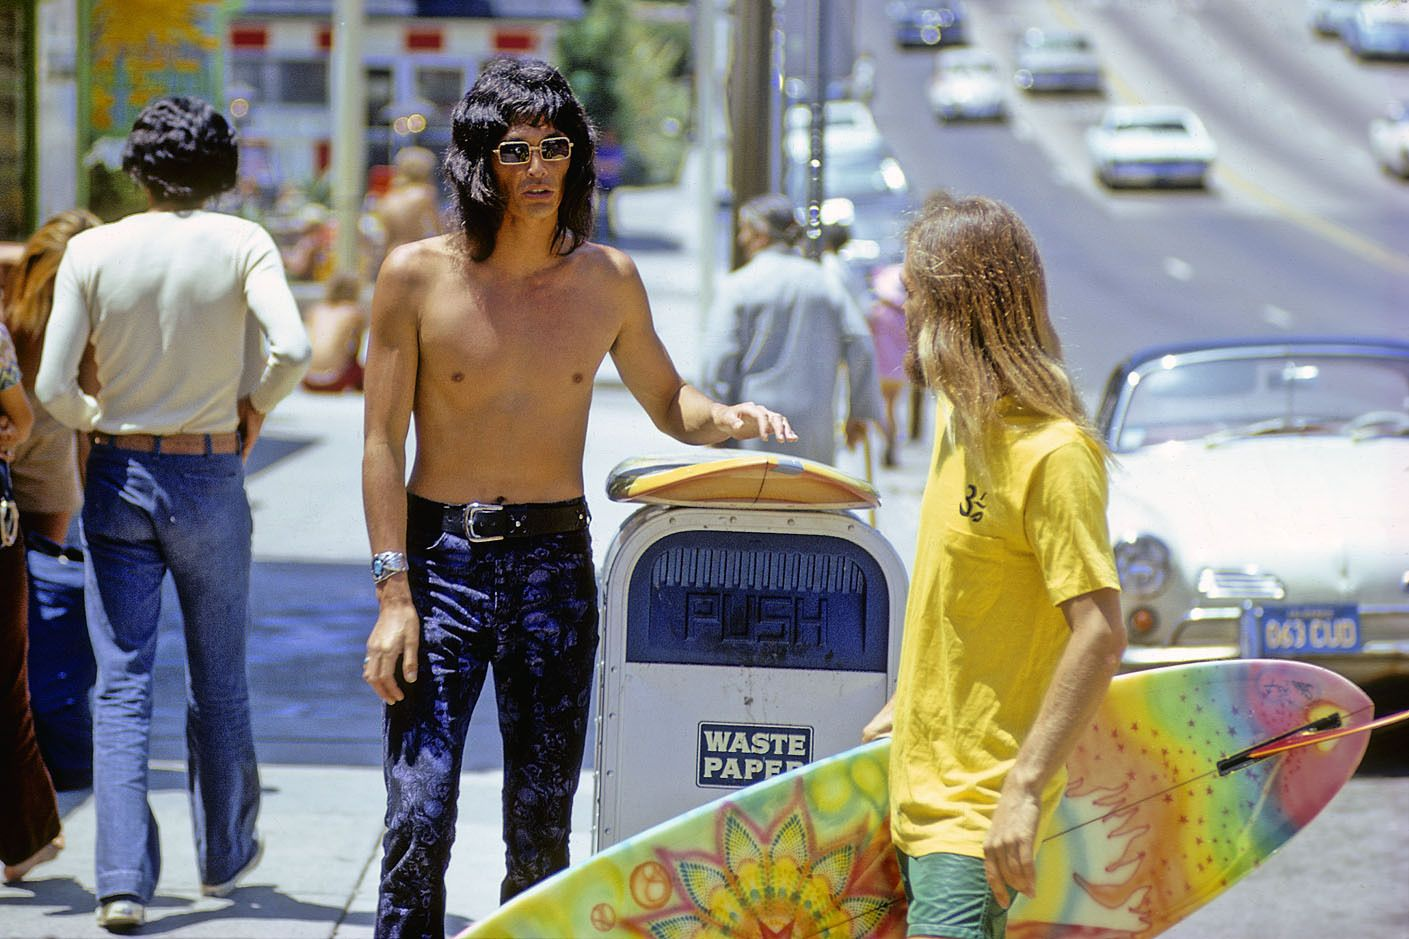 DAVID NUUHIWA , JOHN GALE, PCH ,LAGUNA BEACH CALIF 1971.